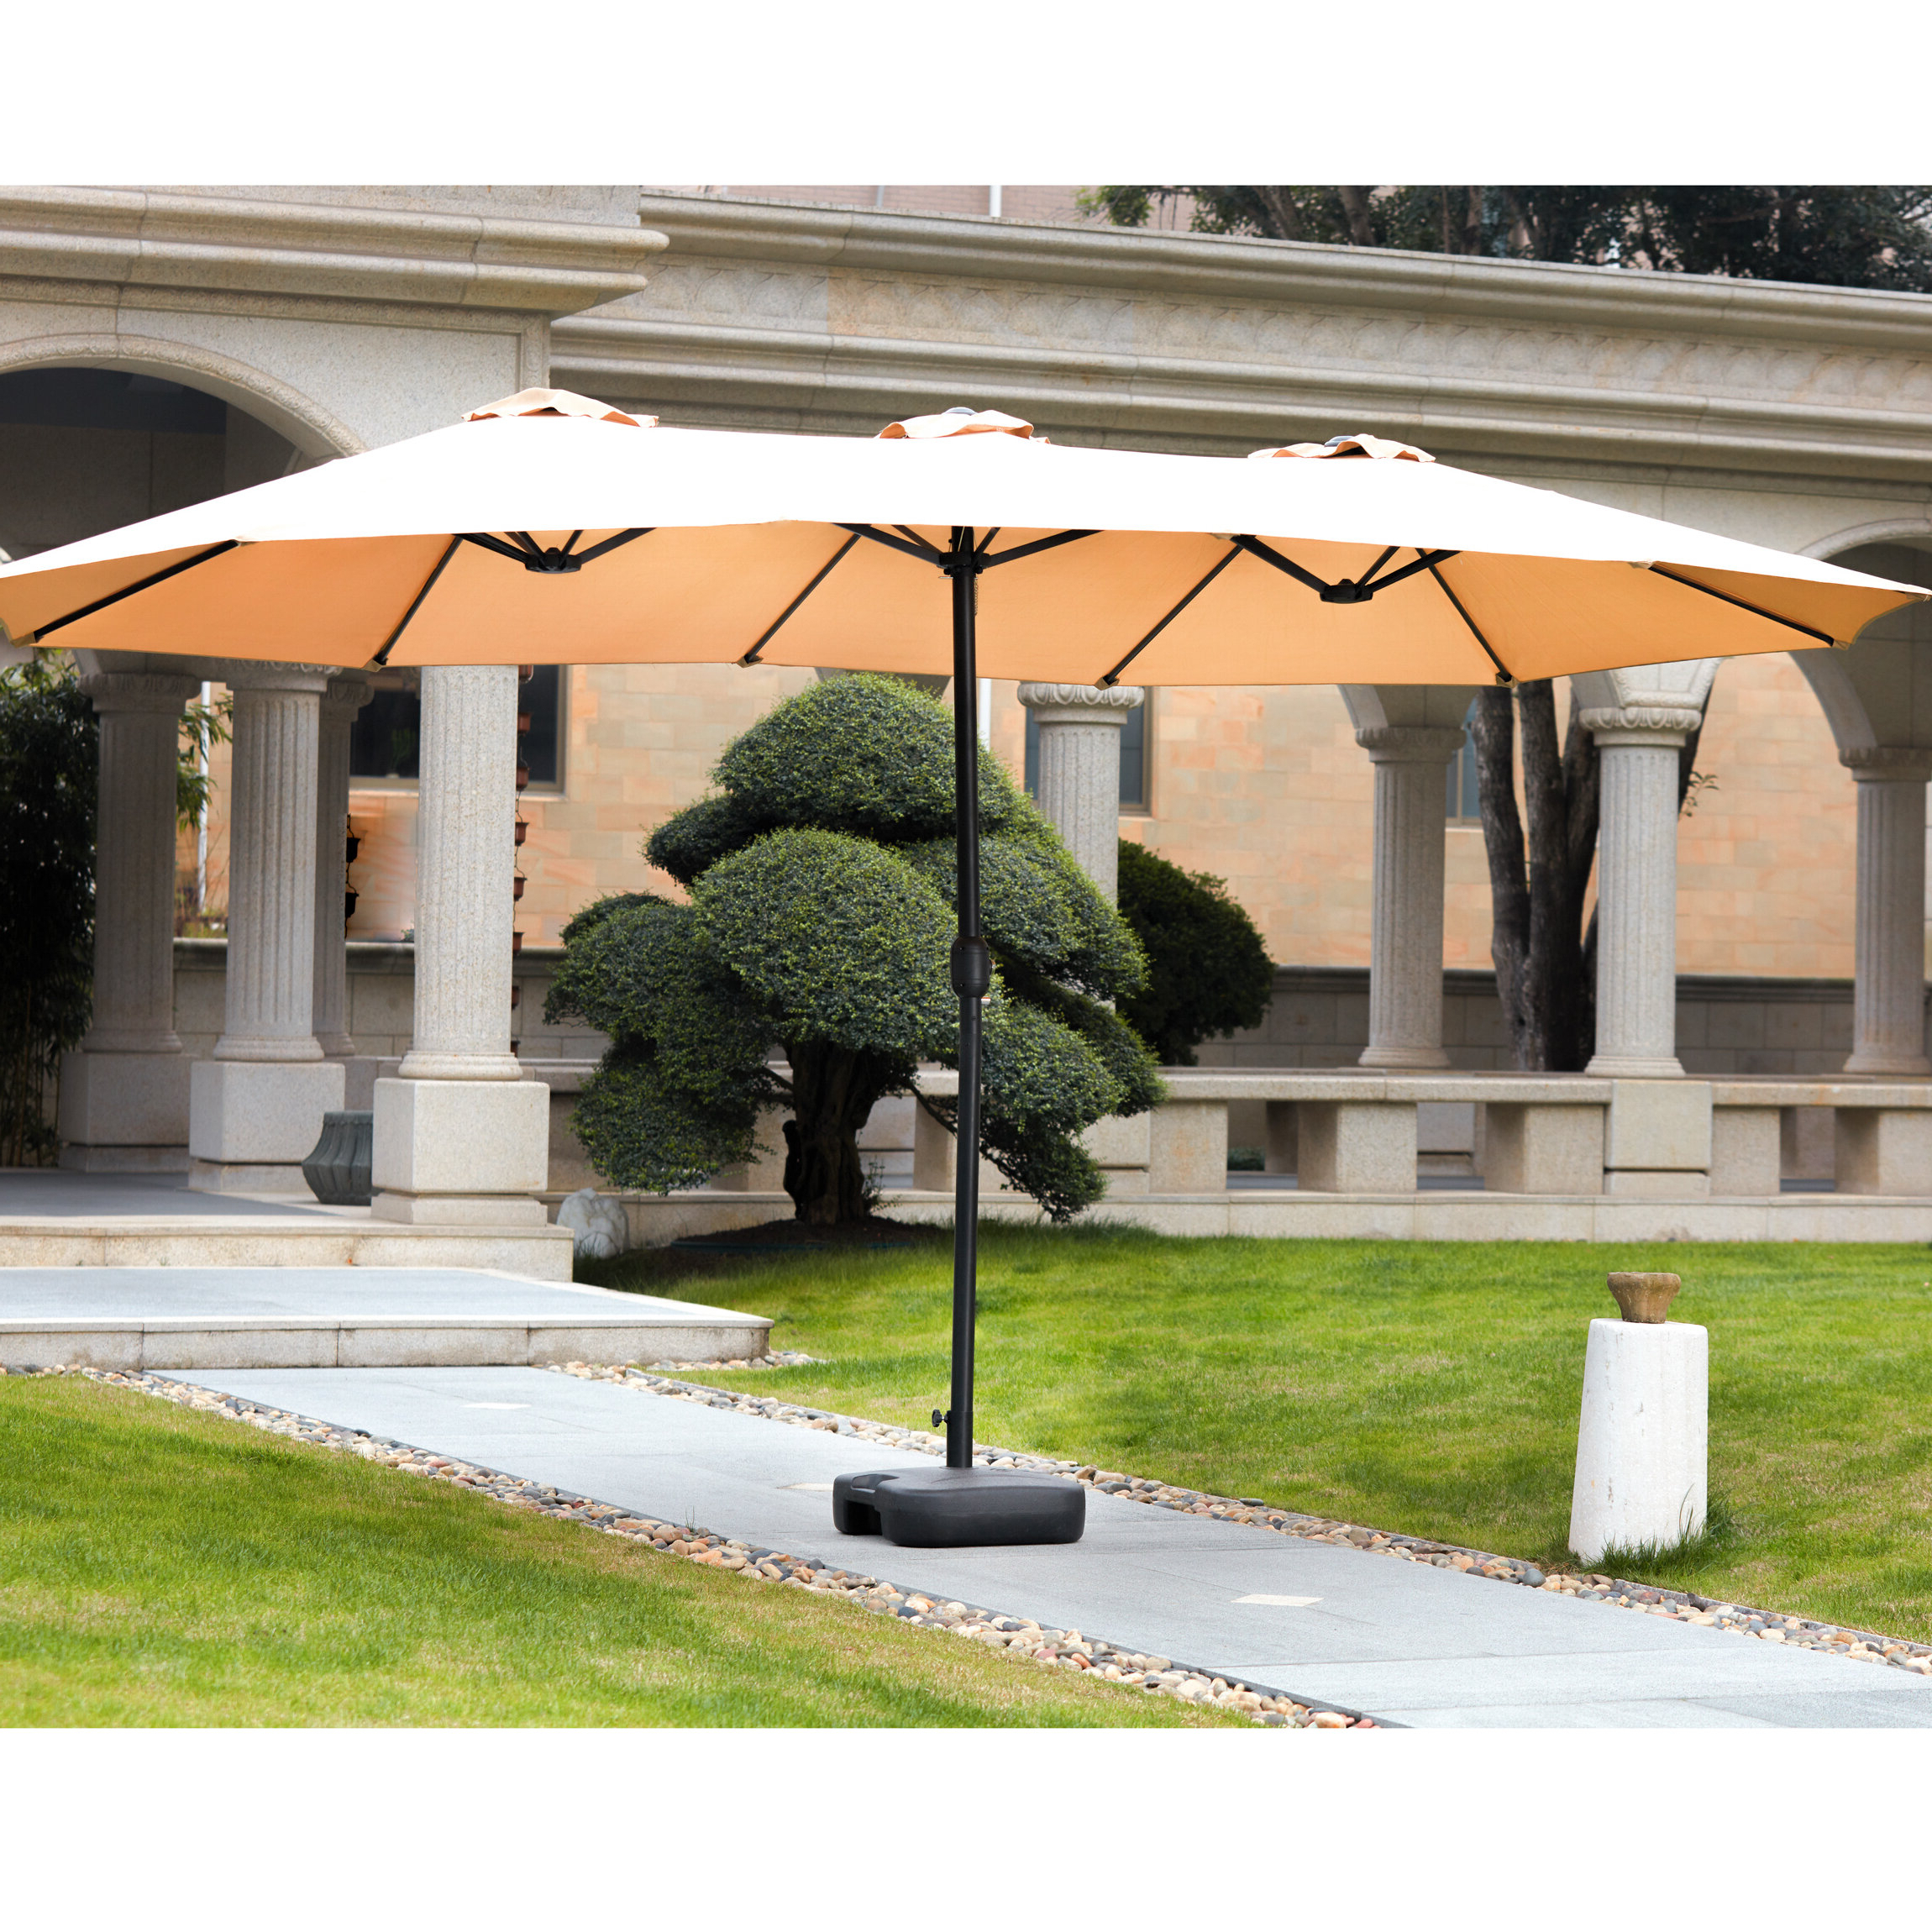 Widely Used Eisele 9' W X 15' D Rectangular Market Umbrella With Regard To Eisele Rectangular Market Umbrellas (View 18 of 20)